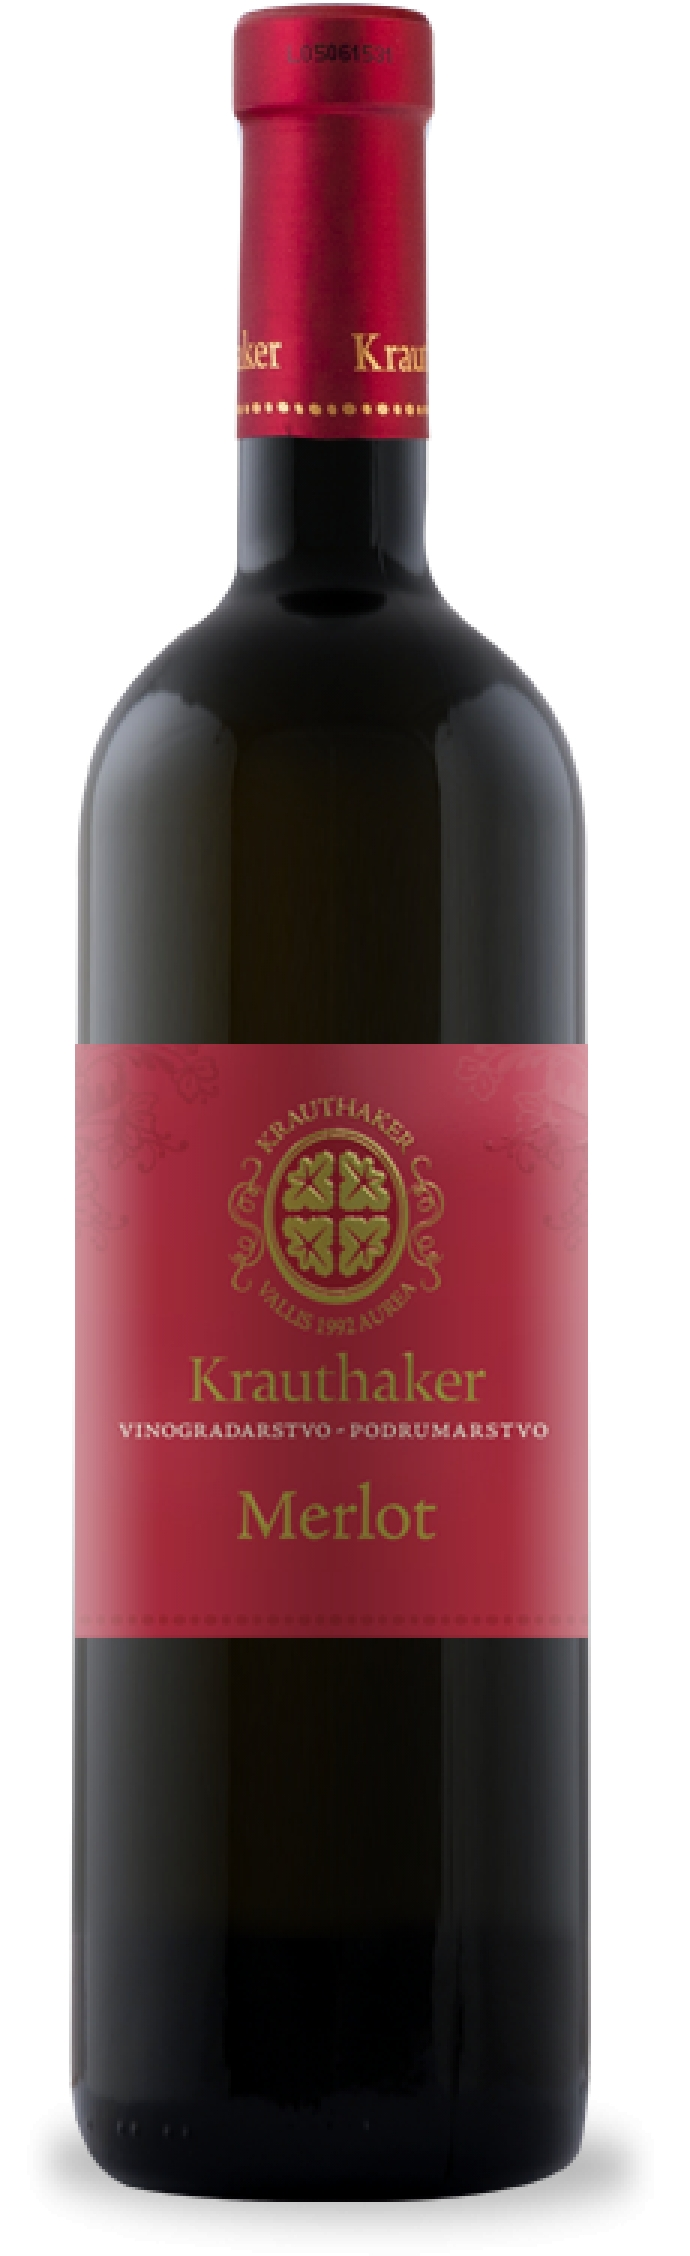 Five Stars for a Late Harvest 2012 Merlot by Vlado Krauthaker